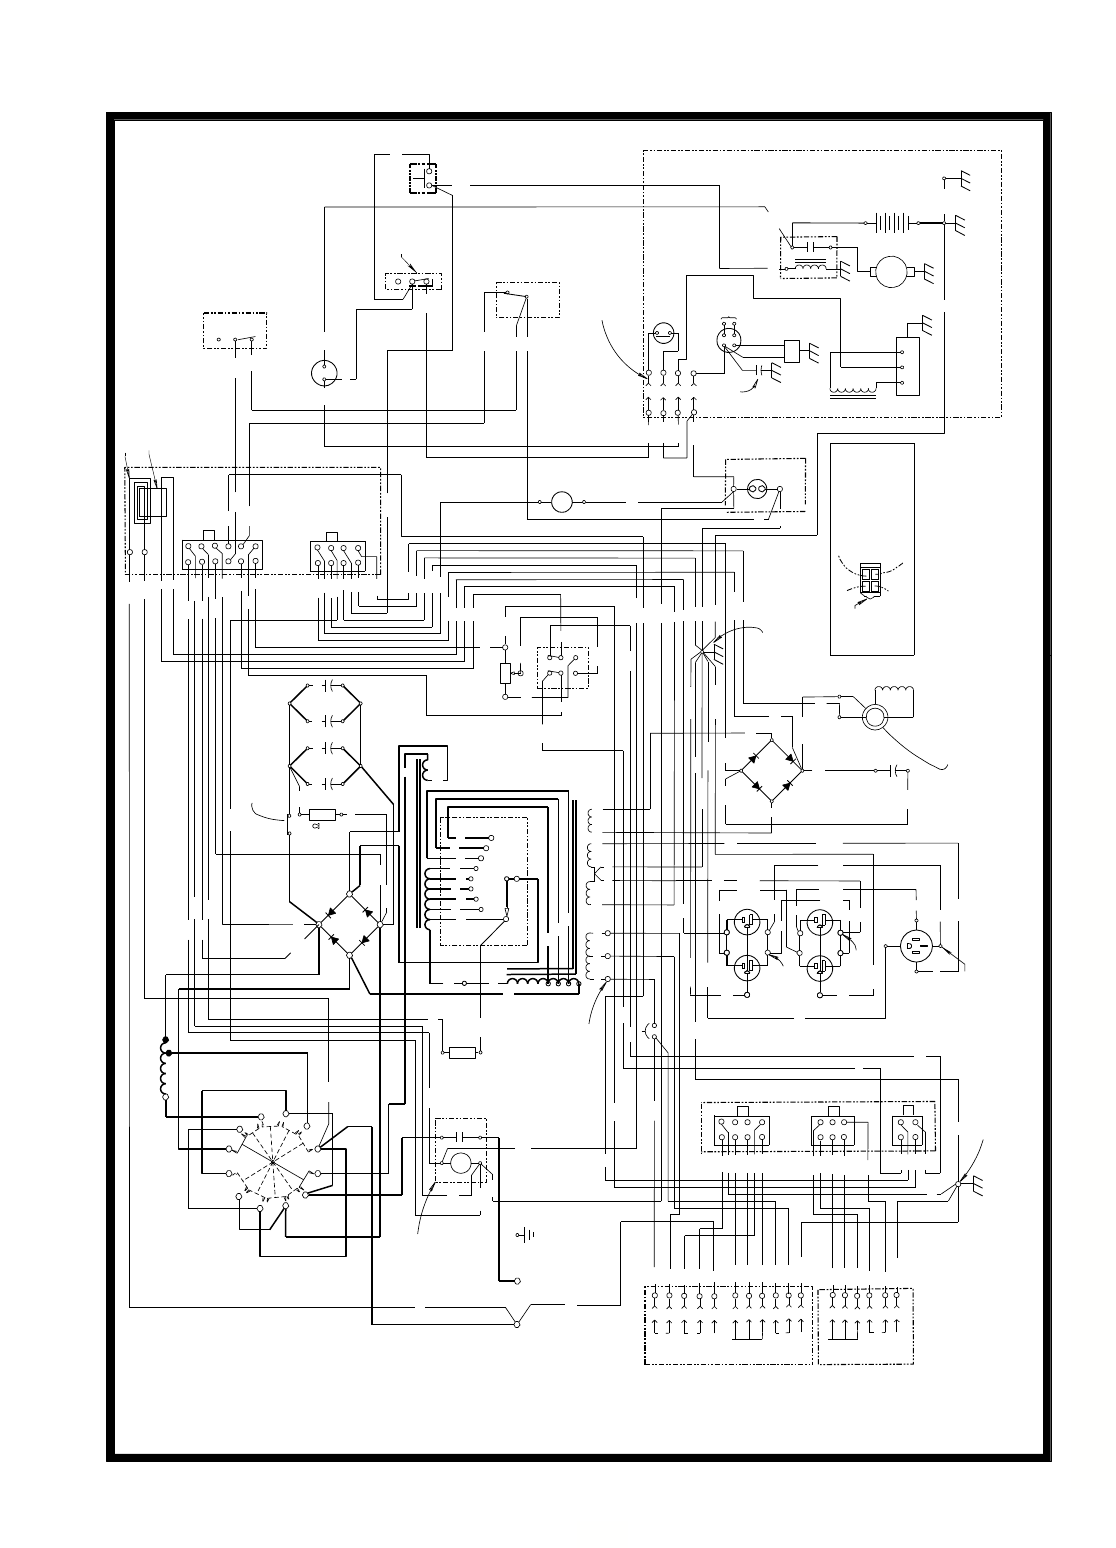 lincoln electric im511-d ranger 9 (onan) - wiring diagram ... lincoln ranger welder wiring diagram